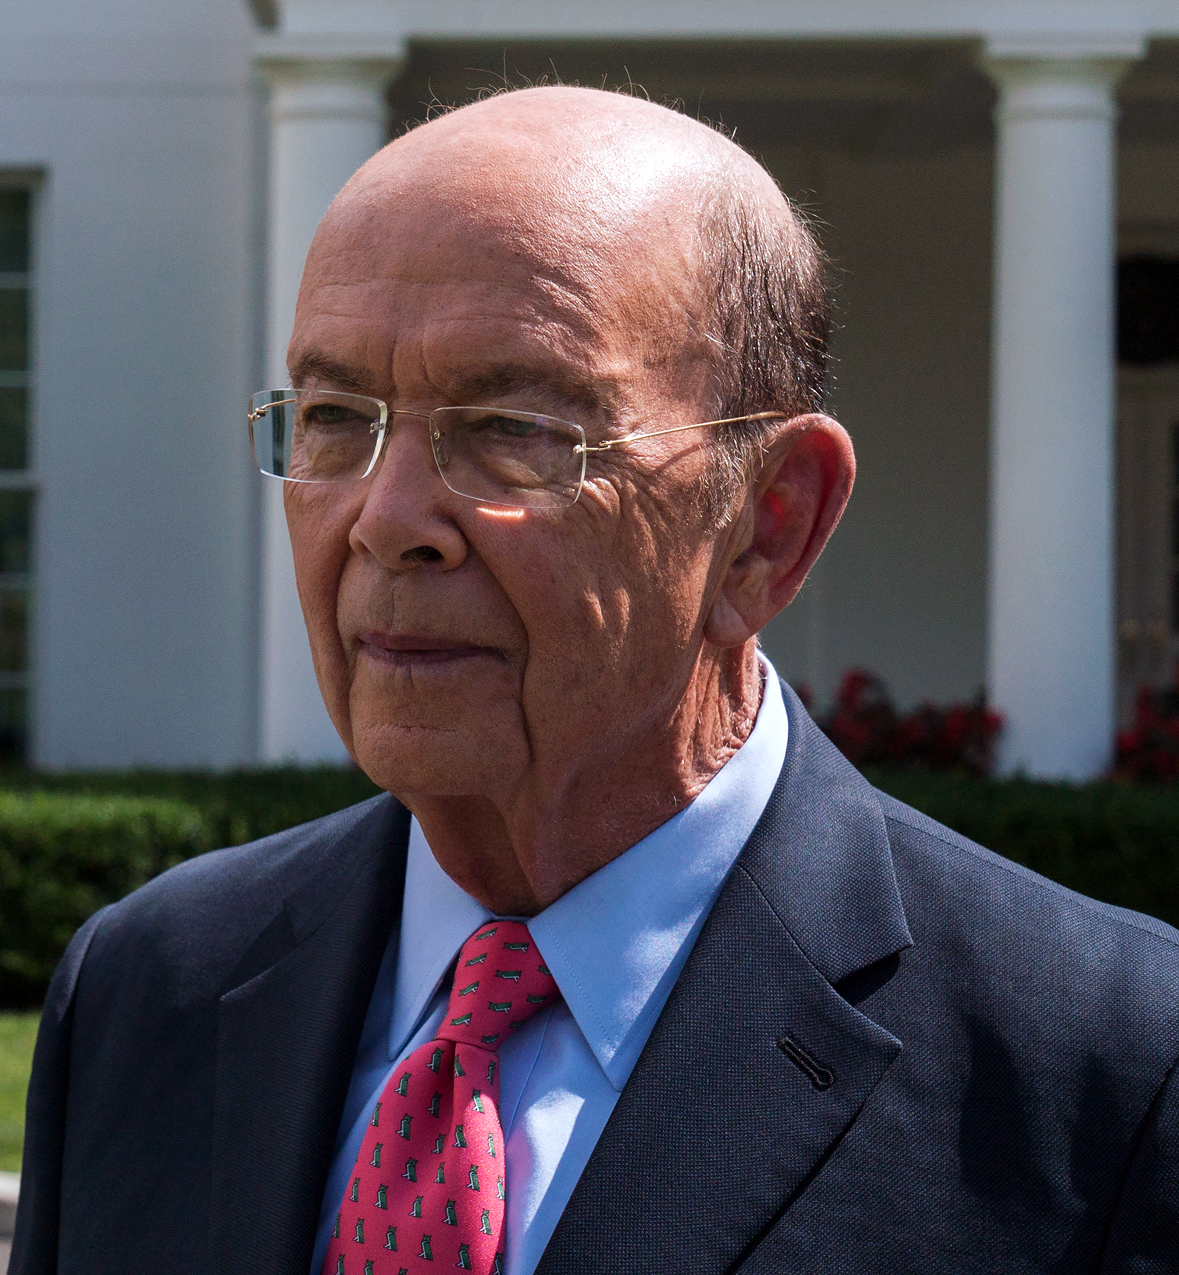 Ross overruled career officials at Census Bureau to add citizenship question